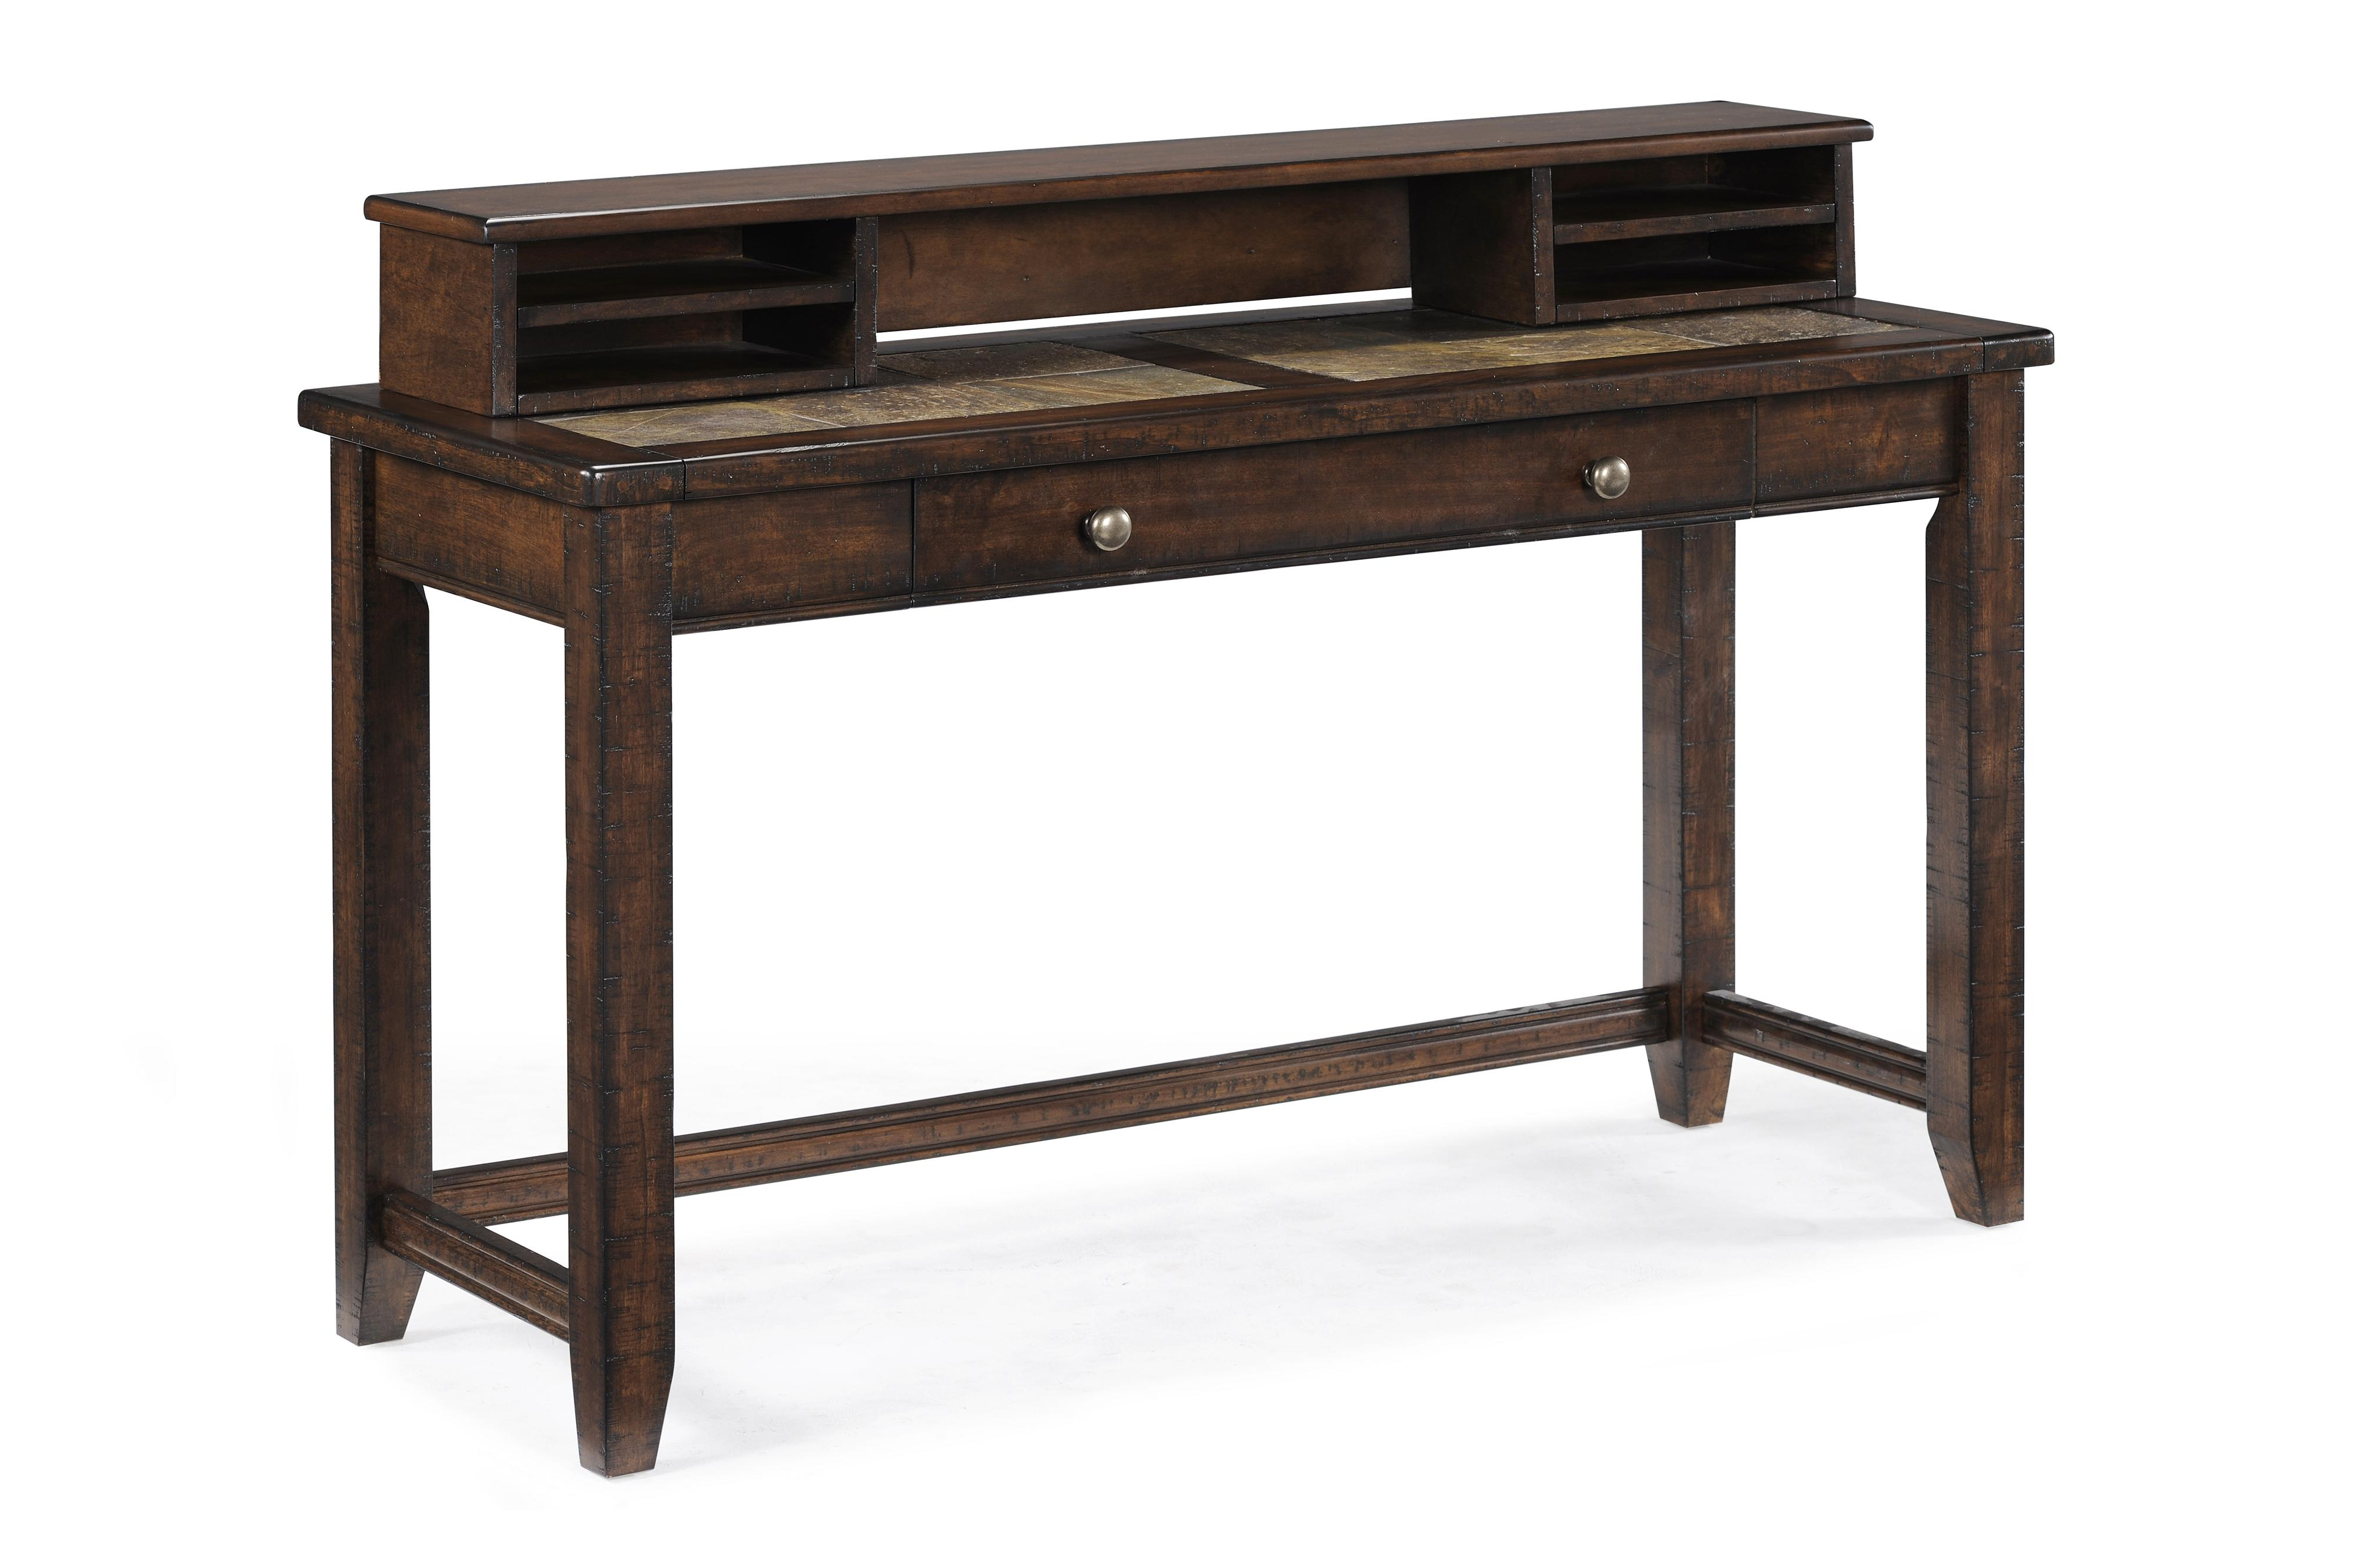 Magnussen Home Allister Sofa Table Desk - Item Number: T1810-90